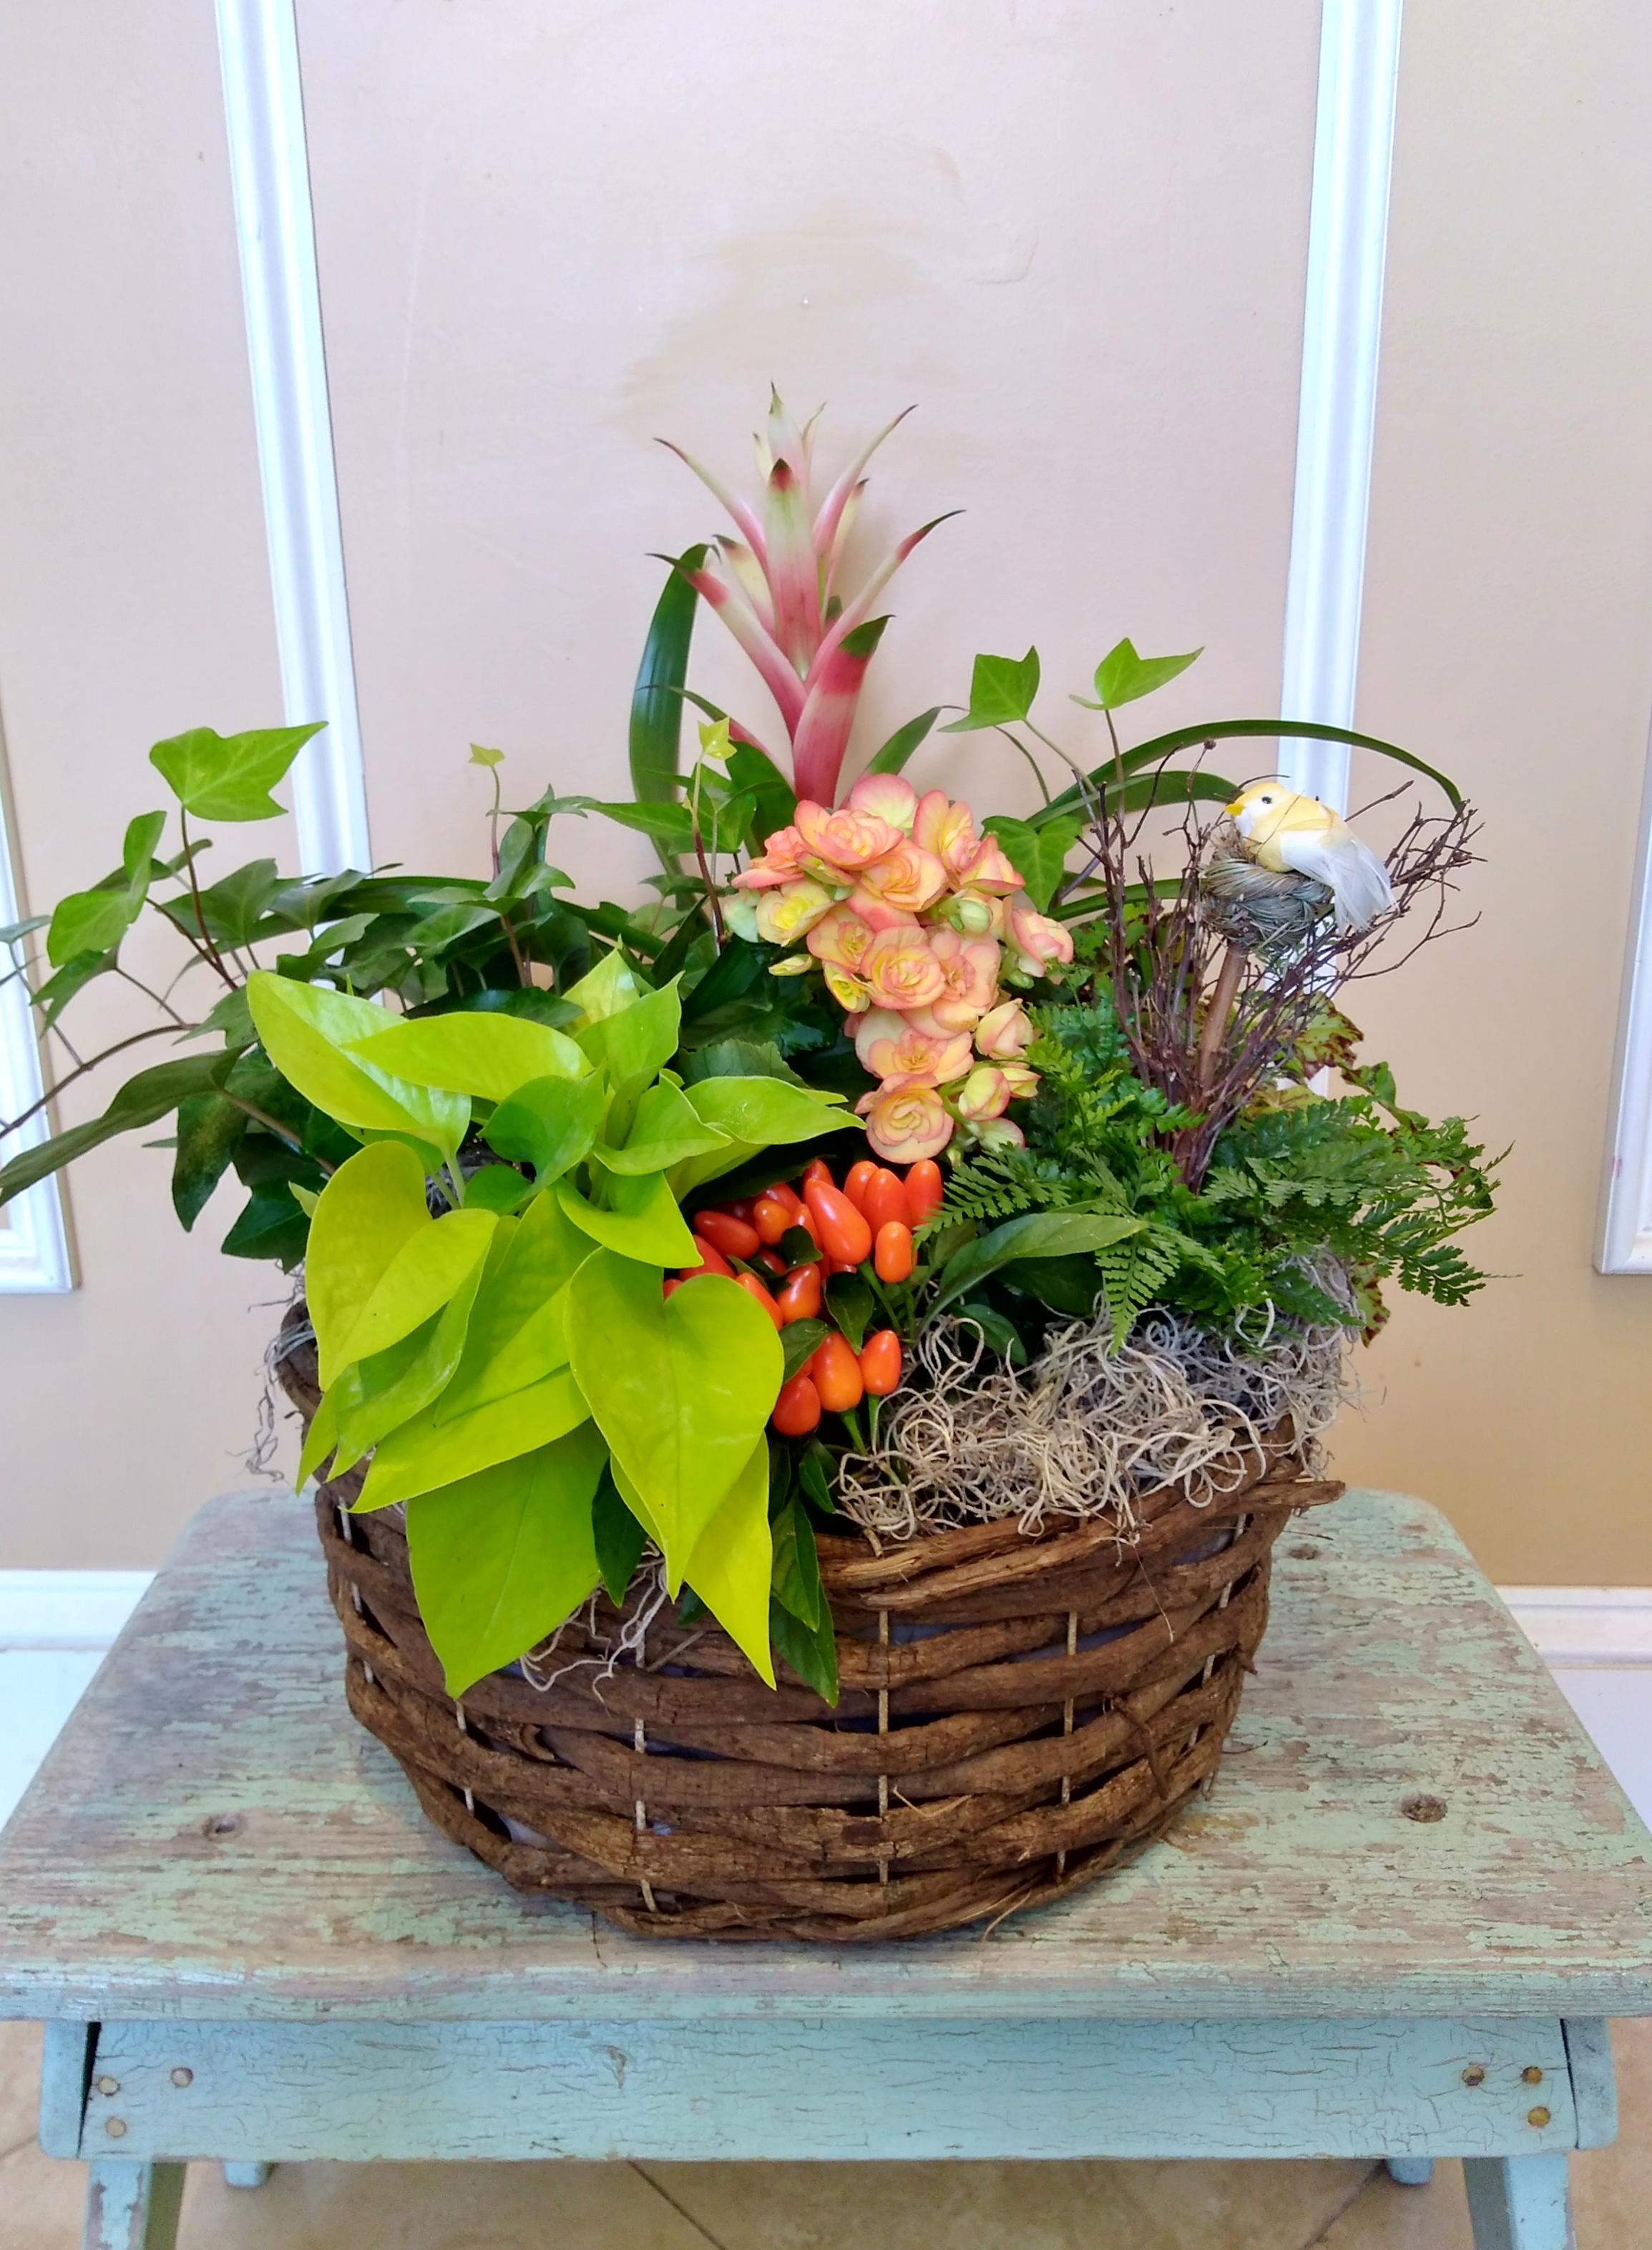 C1 $60-$150 European plant basket. $100 as shown.